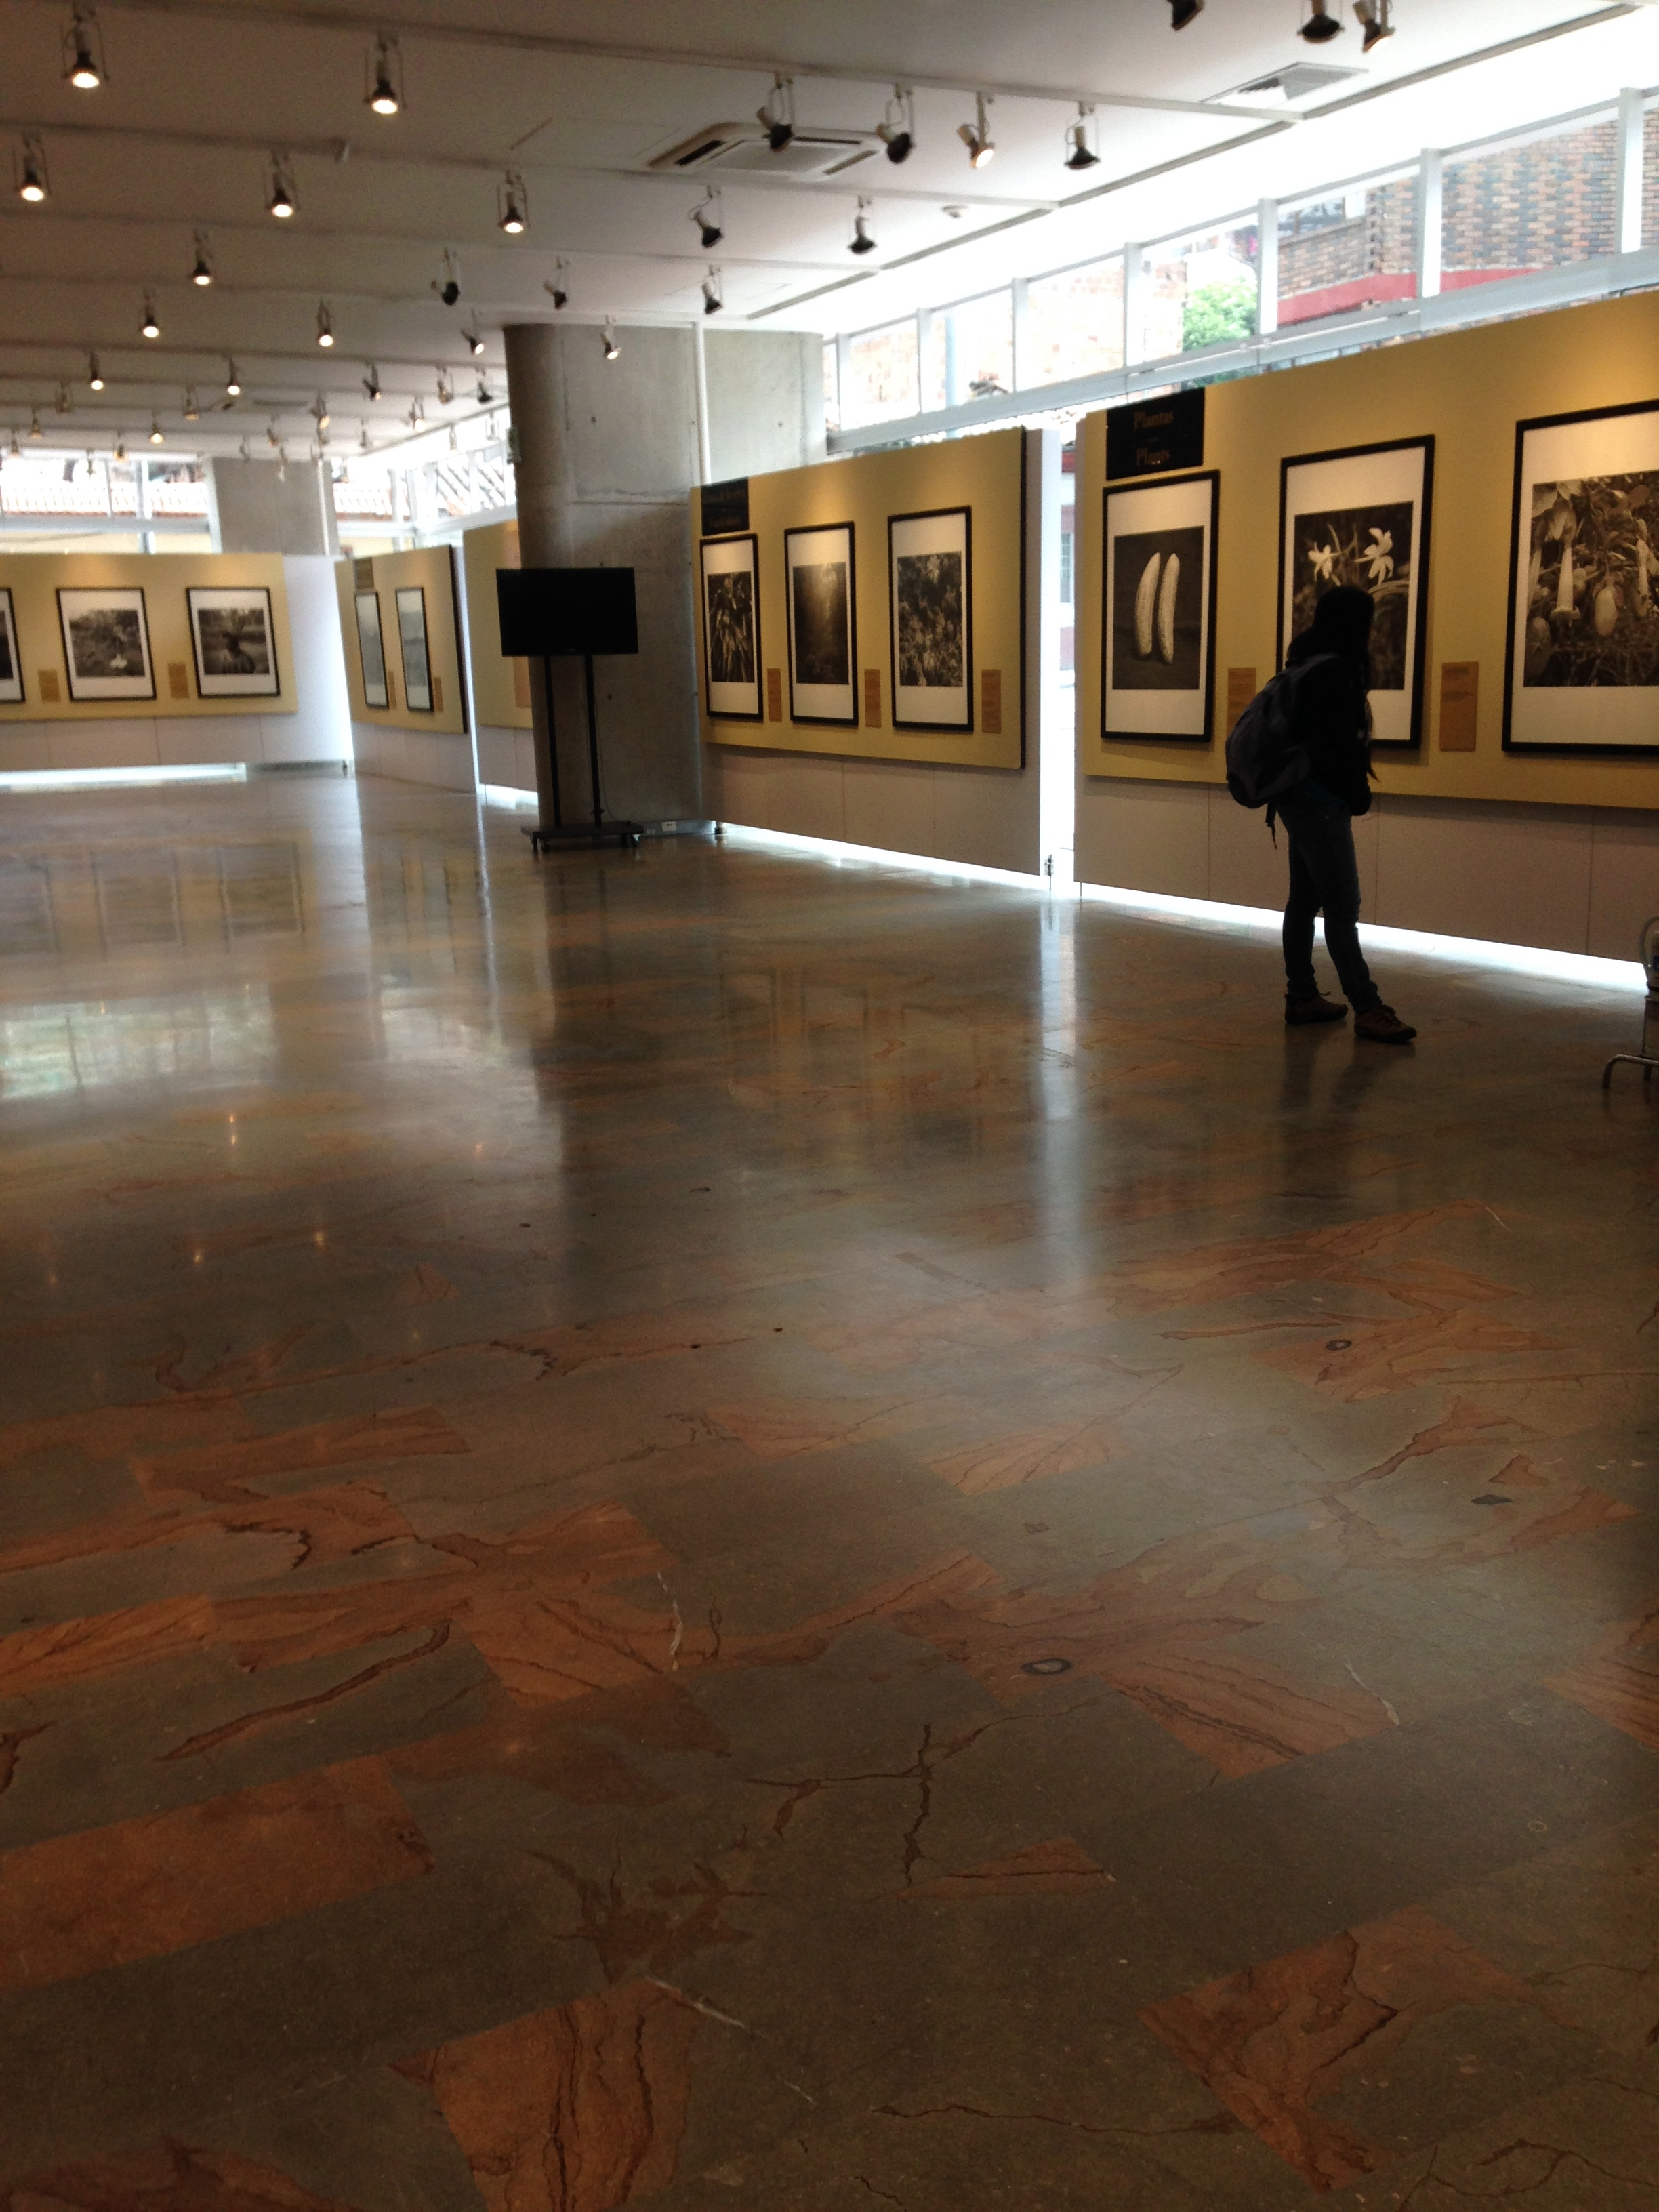 The art gallery of the University of Los Andes in Bogota, Colombia.